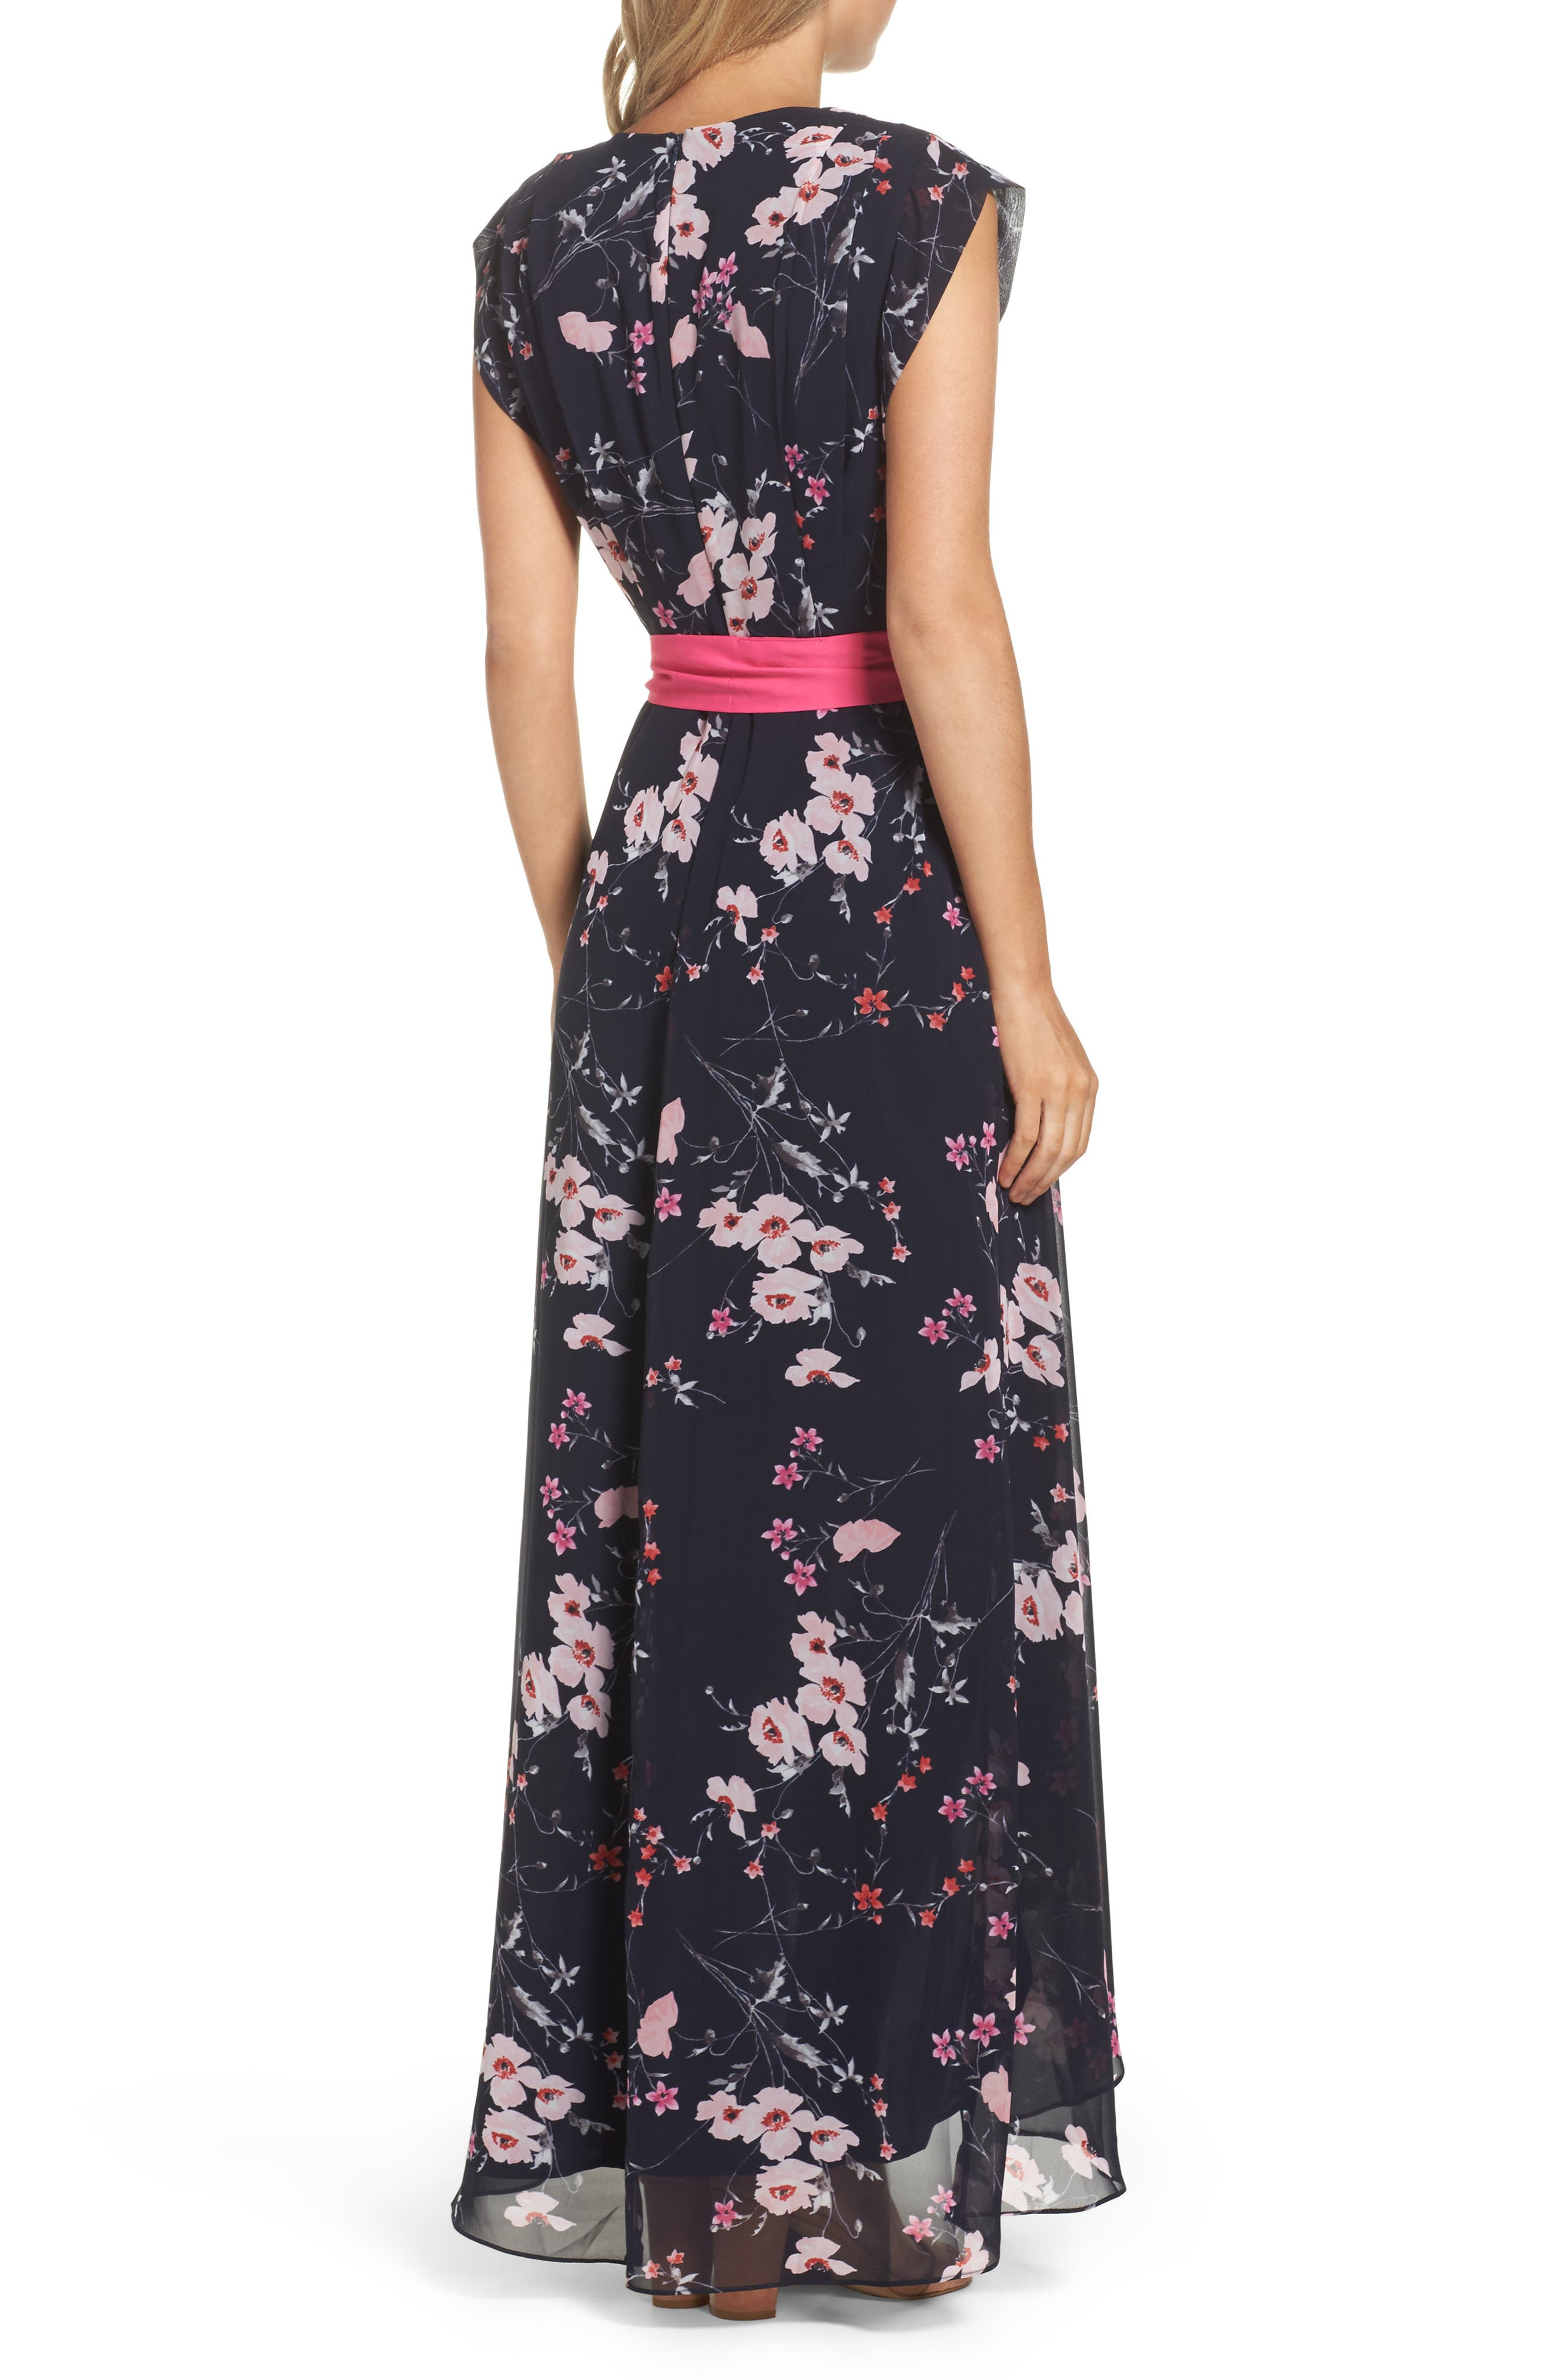 ELIZA J, High/Low Floral Faux Wrap Dress, Alternate thumbnail 2, color, NAVY/ PINK